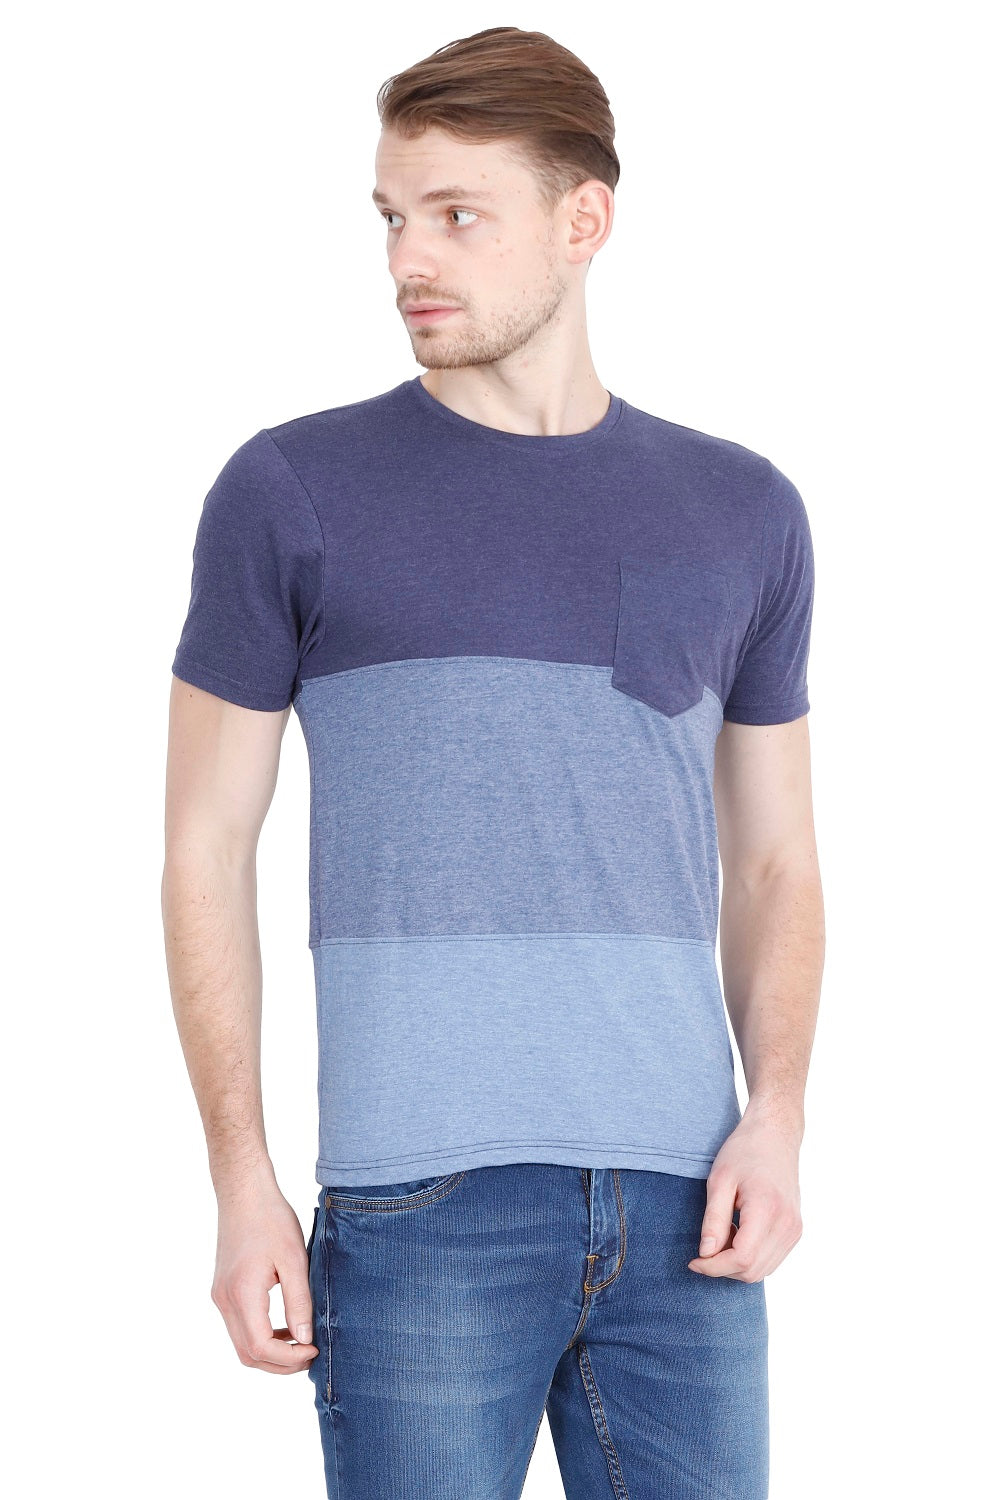 Hunt and Howe Men's Engineered styled Short Sleeve T-Shirt